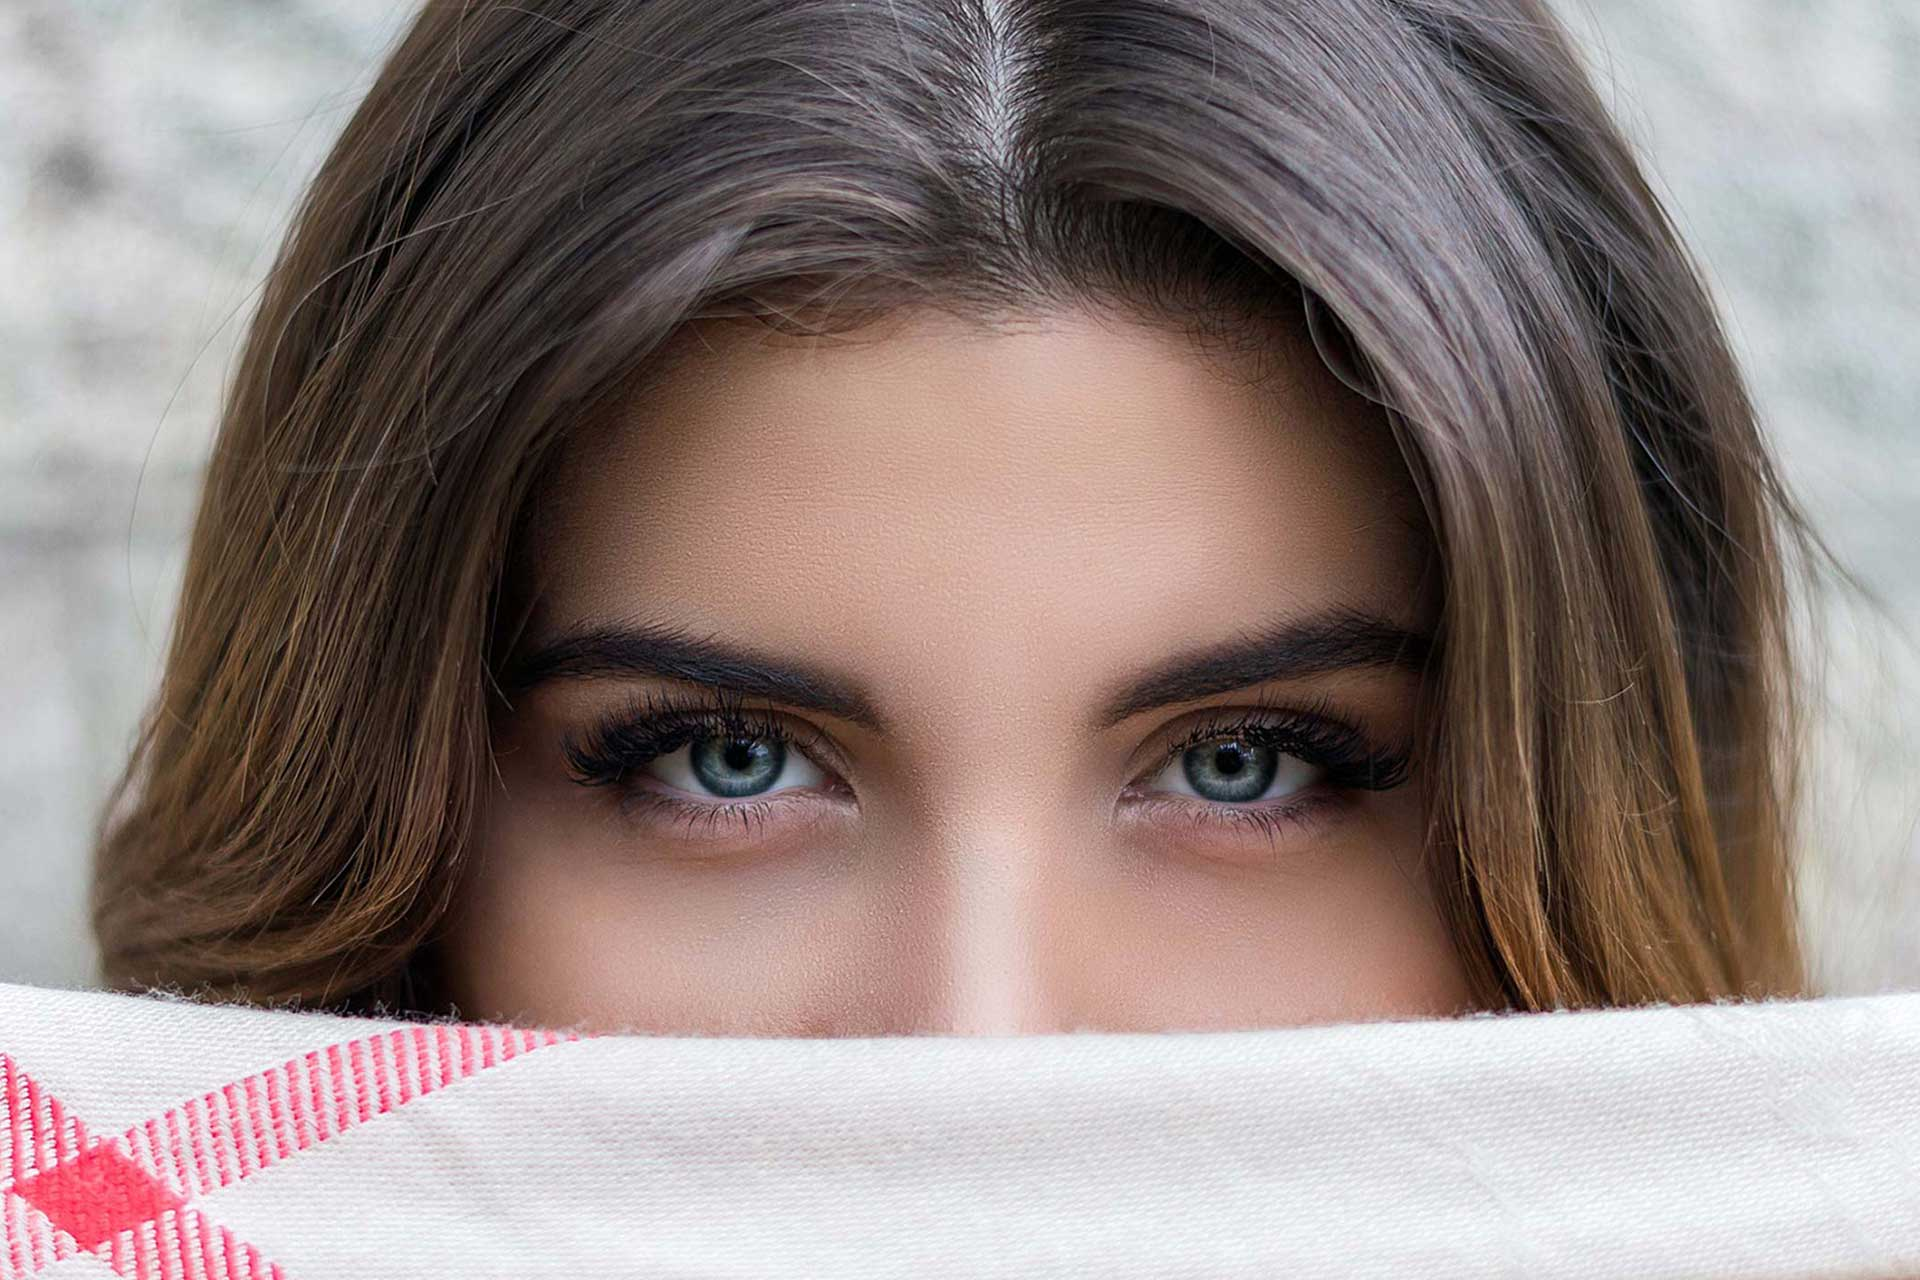 beautiful eyes woman mouth covered